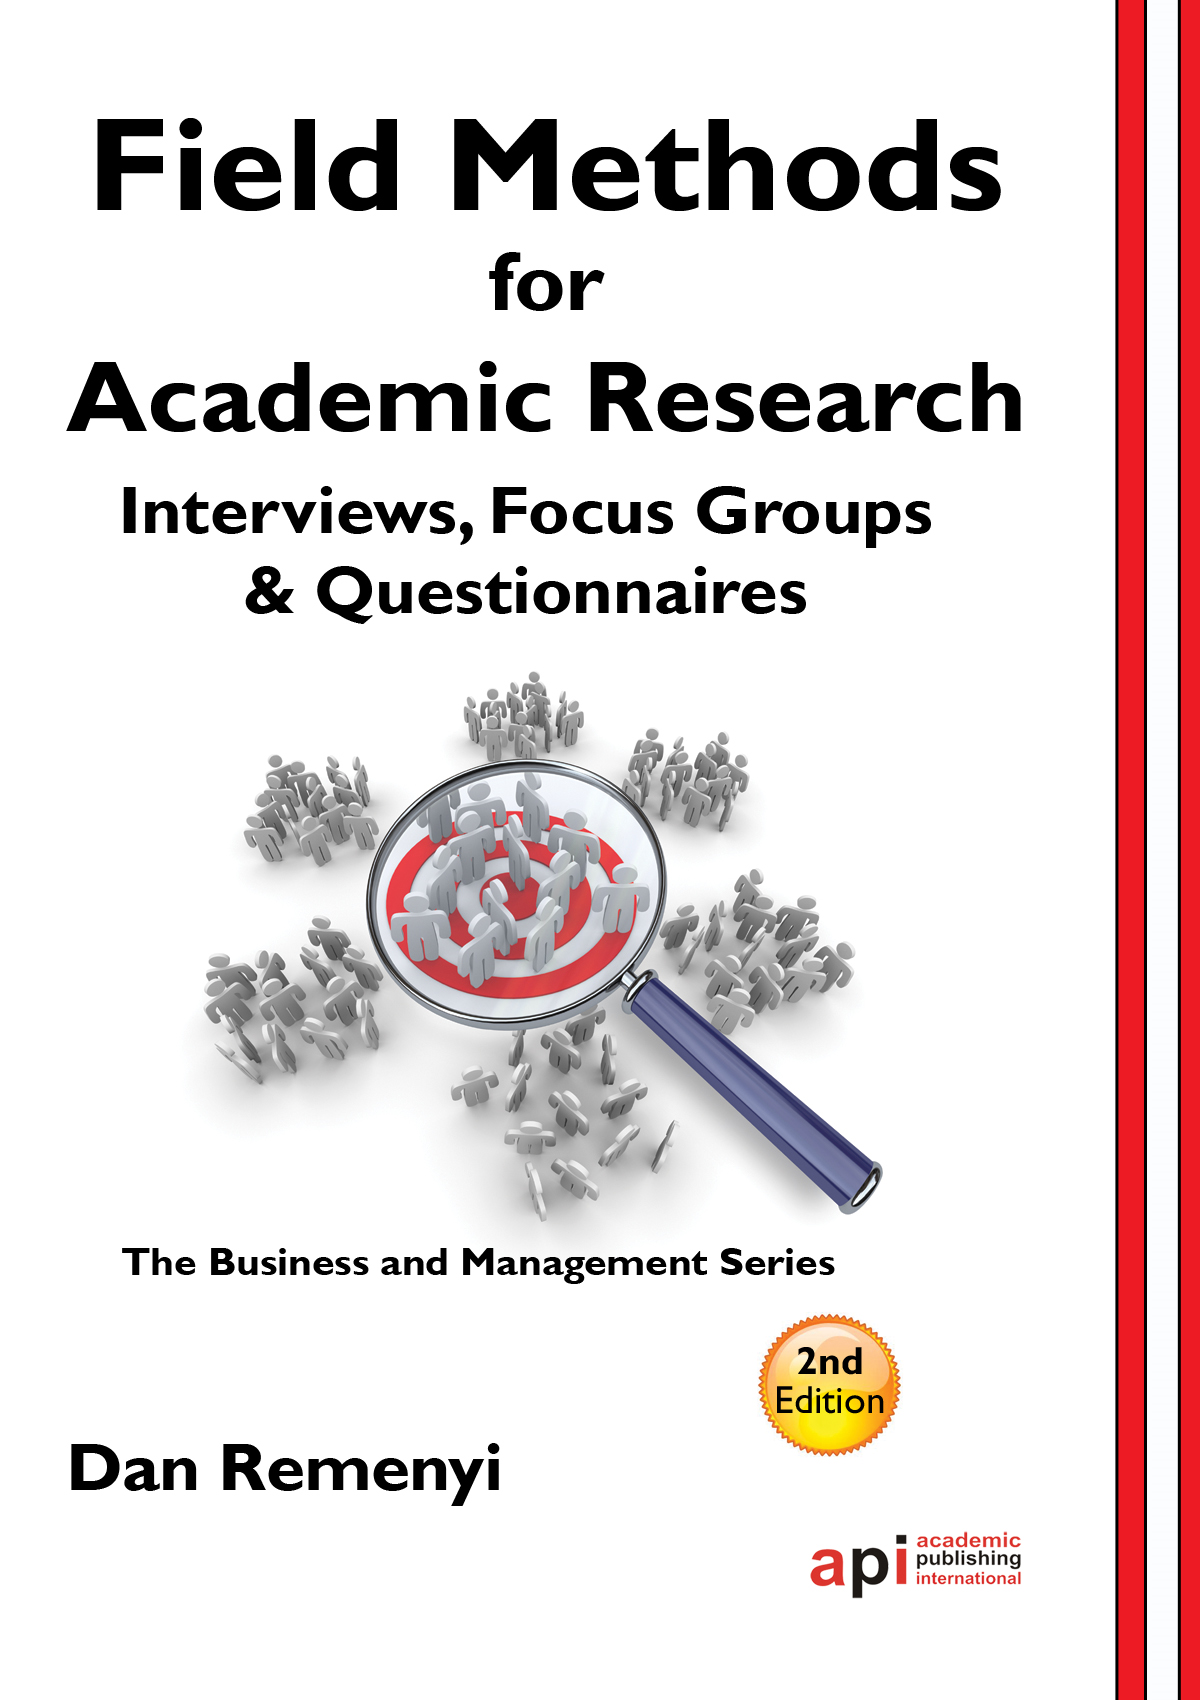 Field Methods for Academic Research: Interviews, Focus Groups and Questionnaires